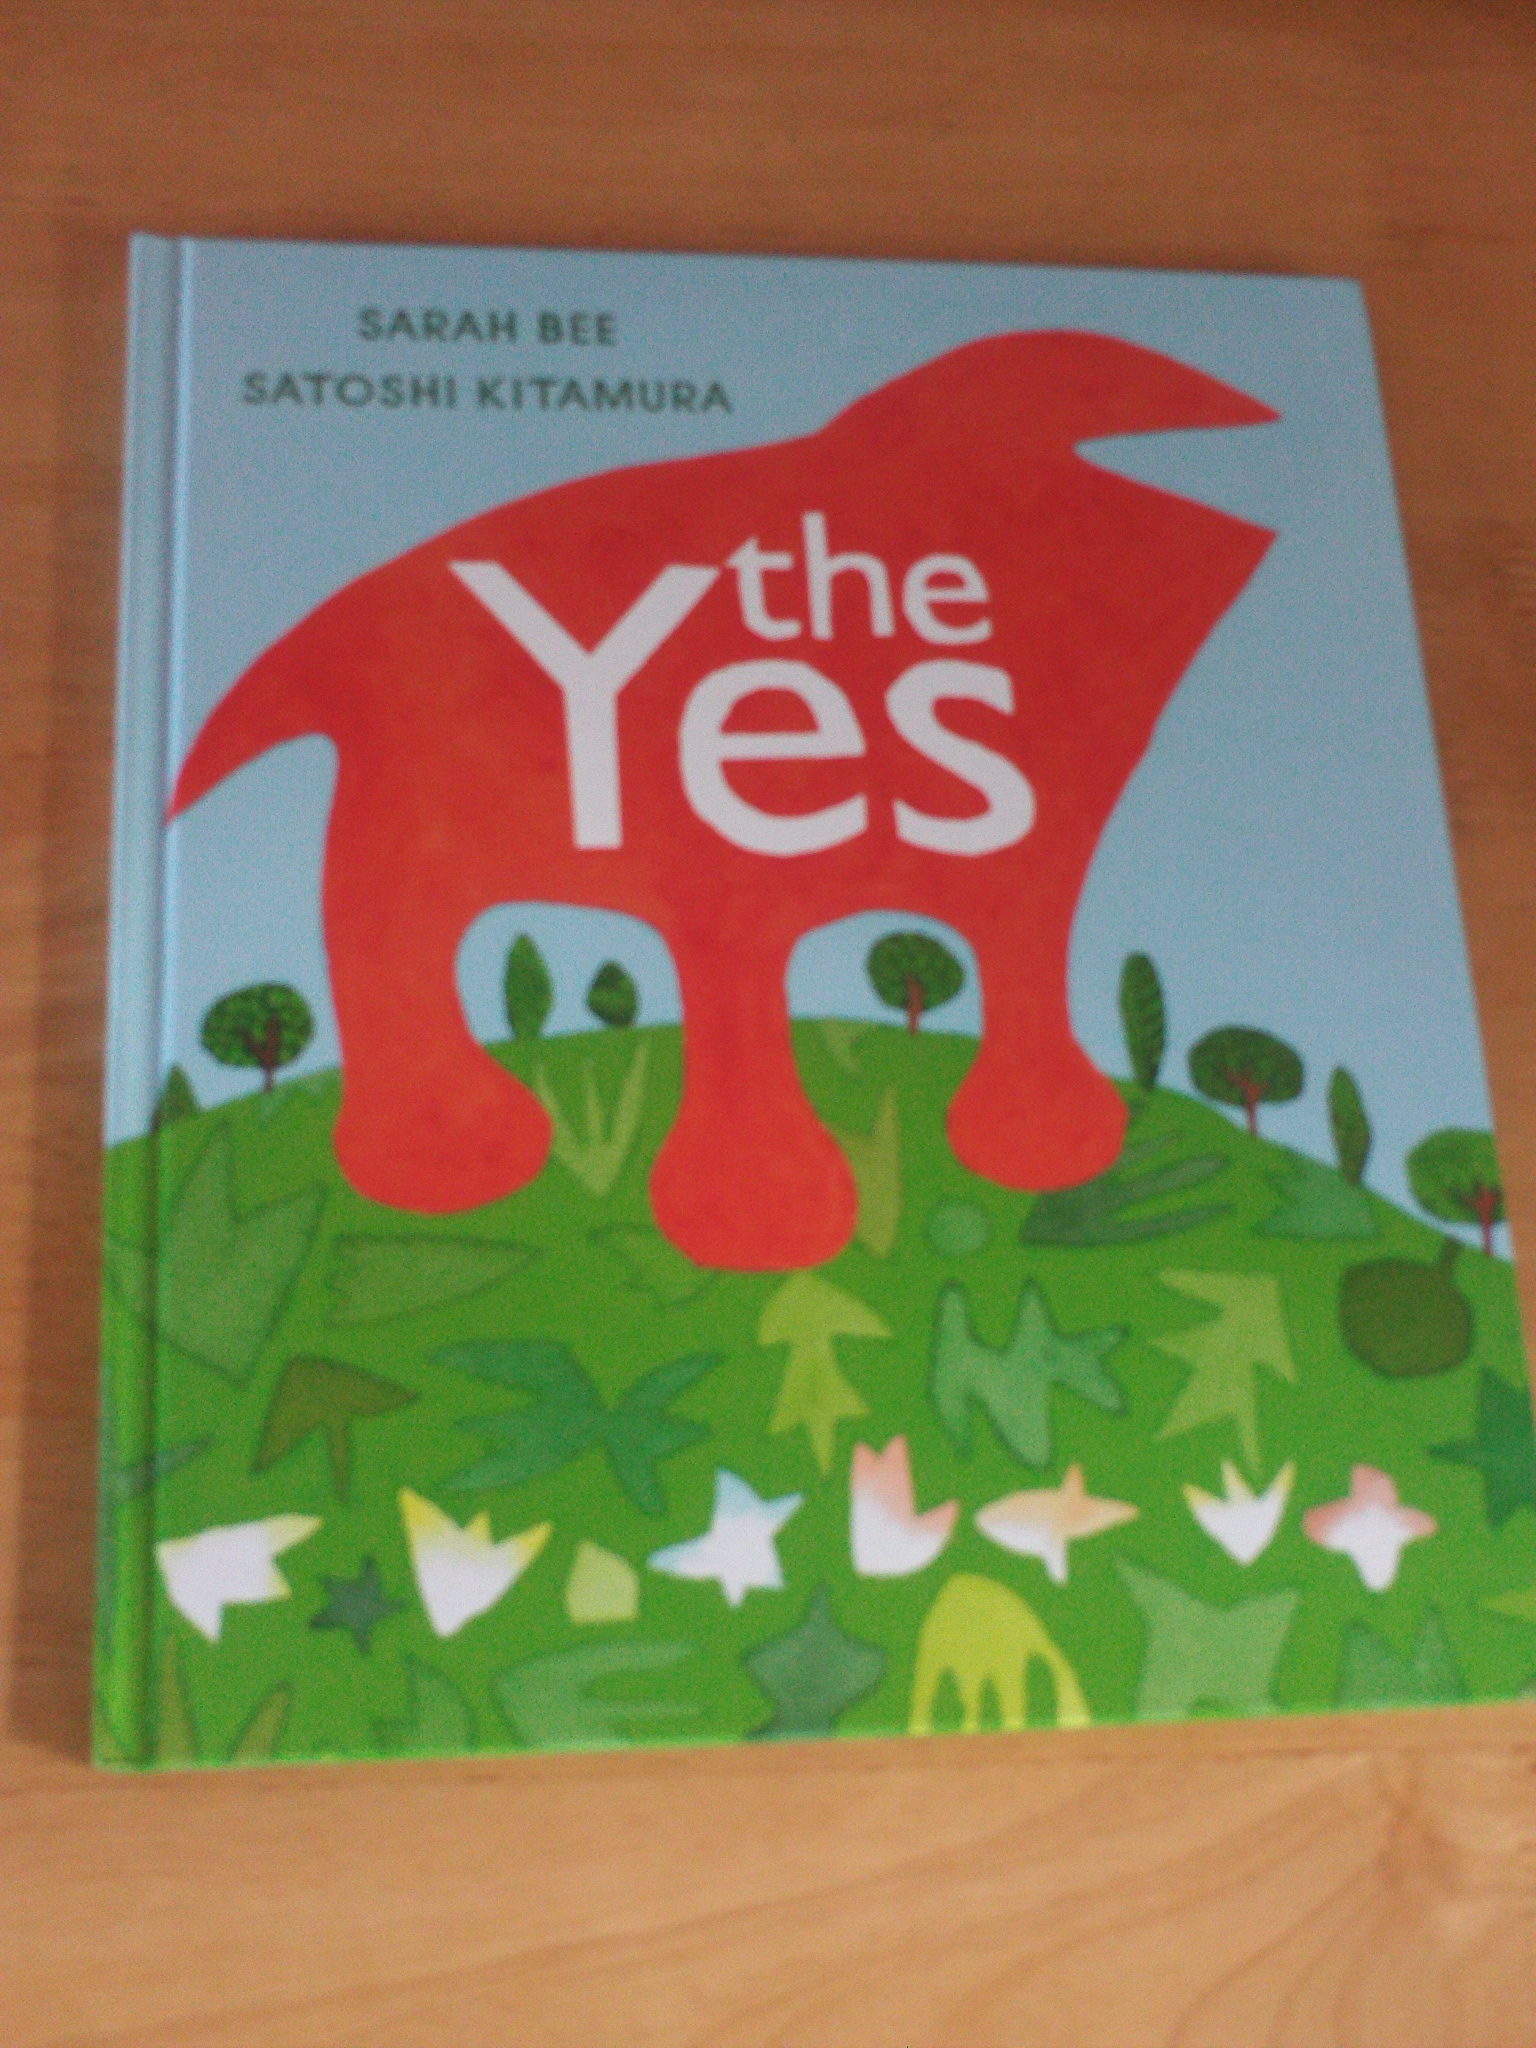 Front cover of 'the yes'